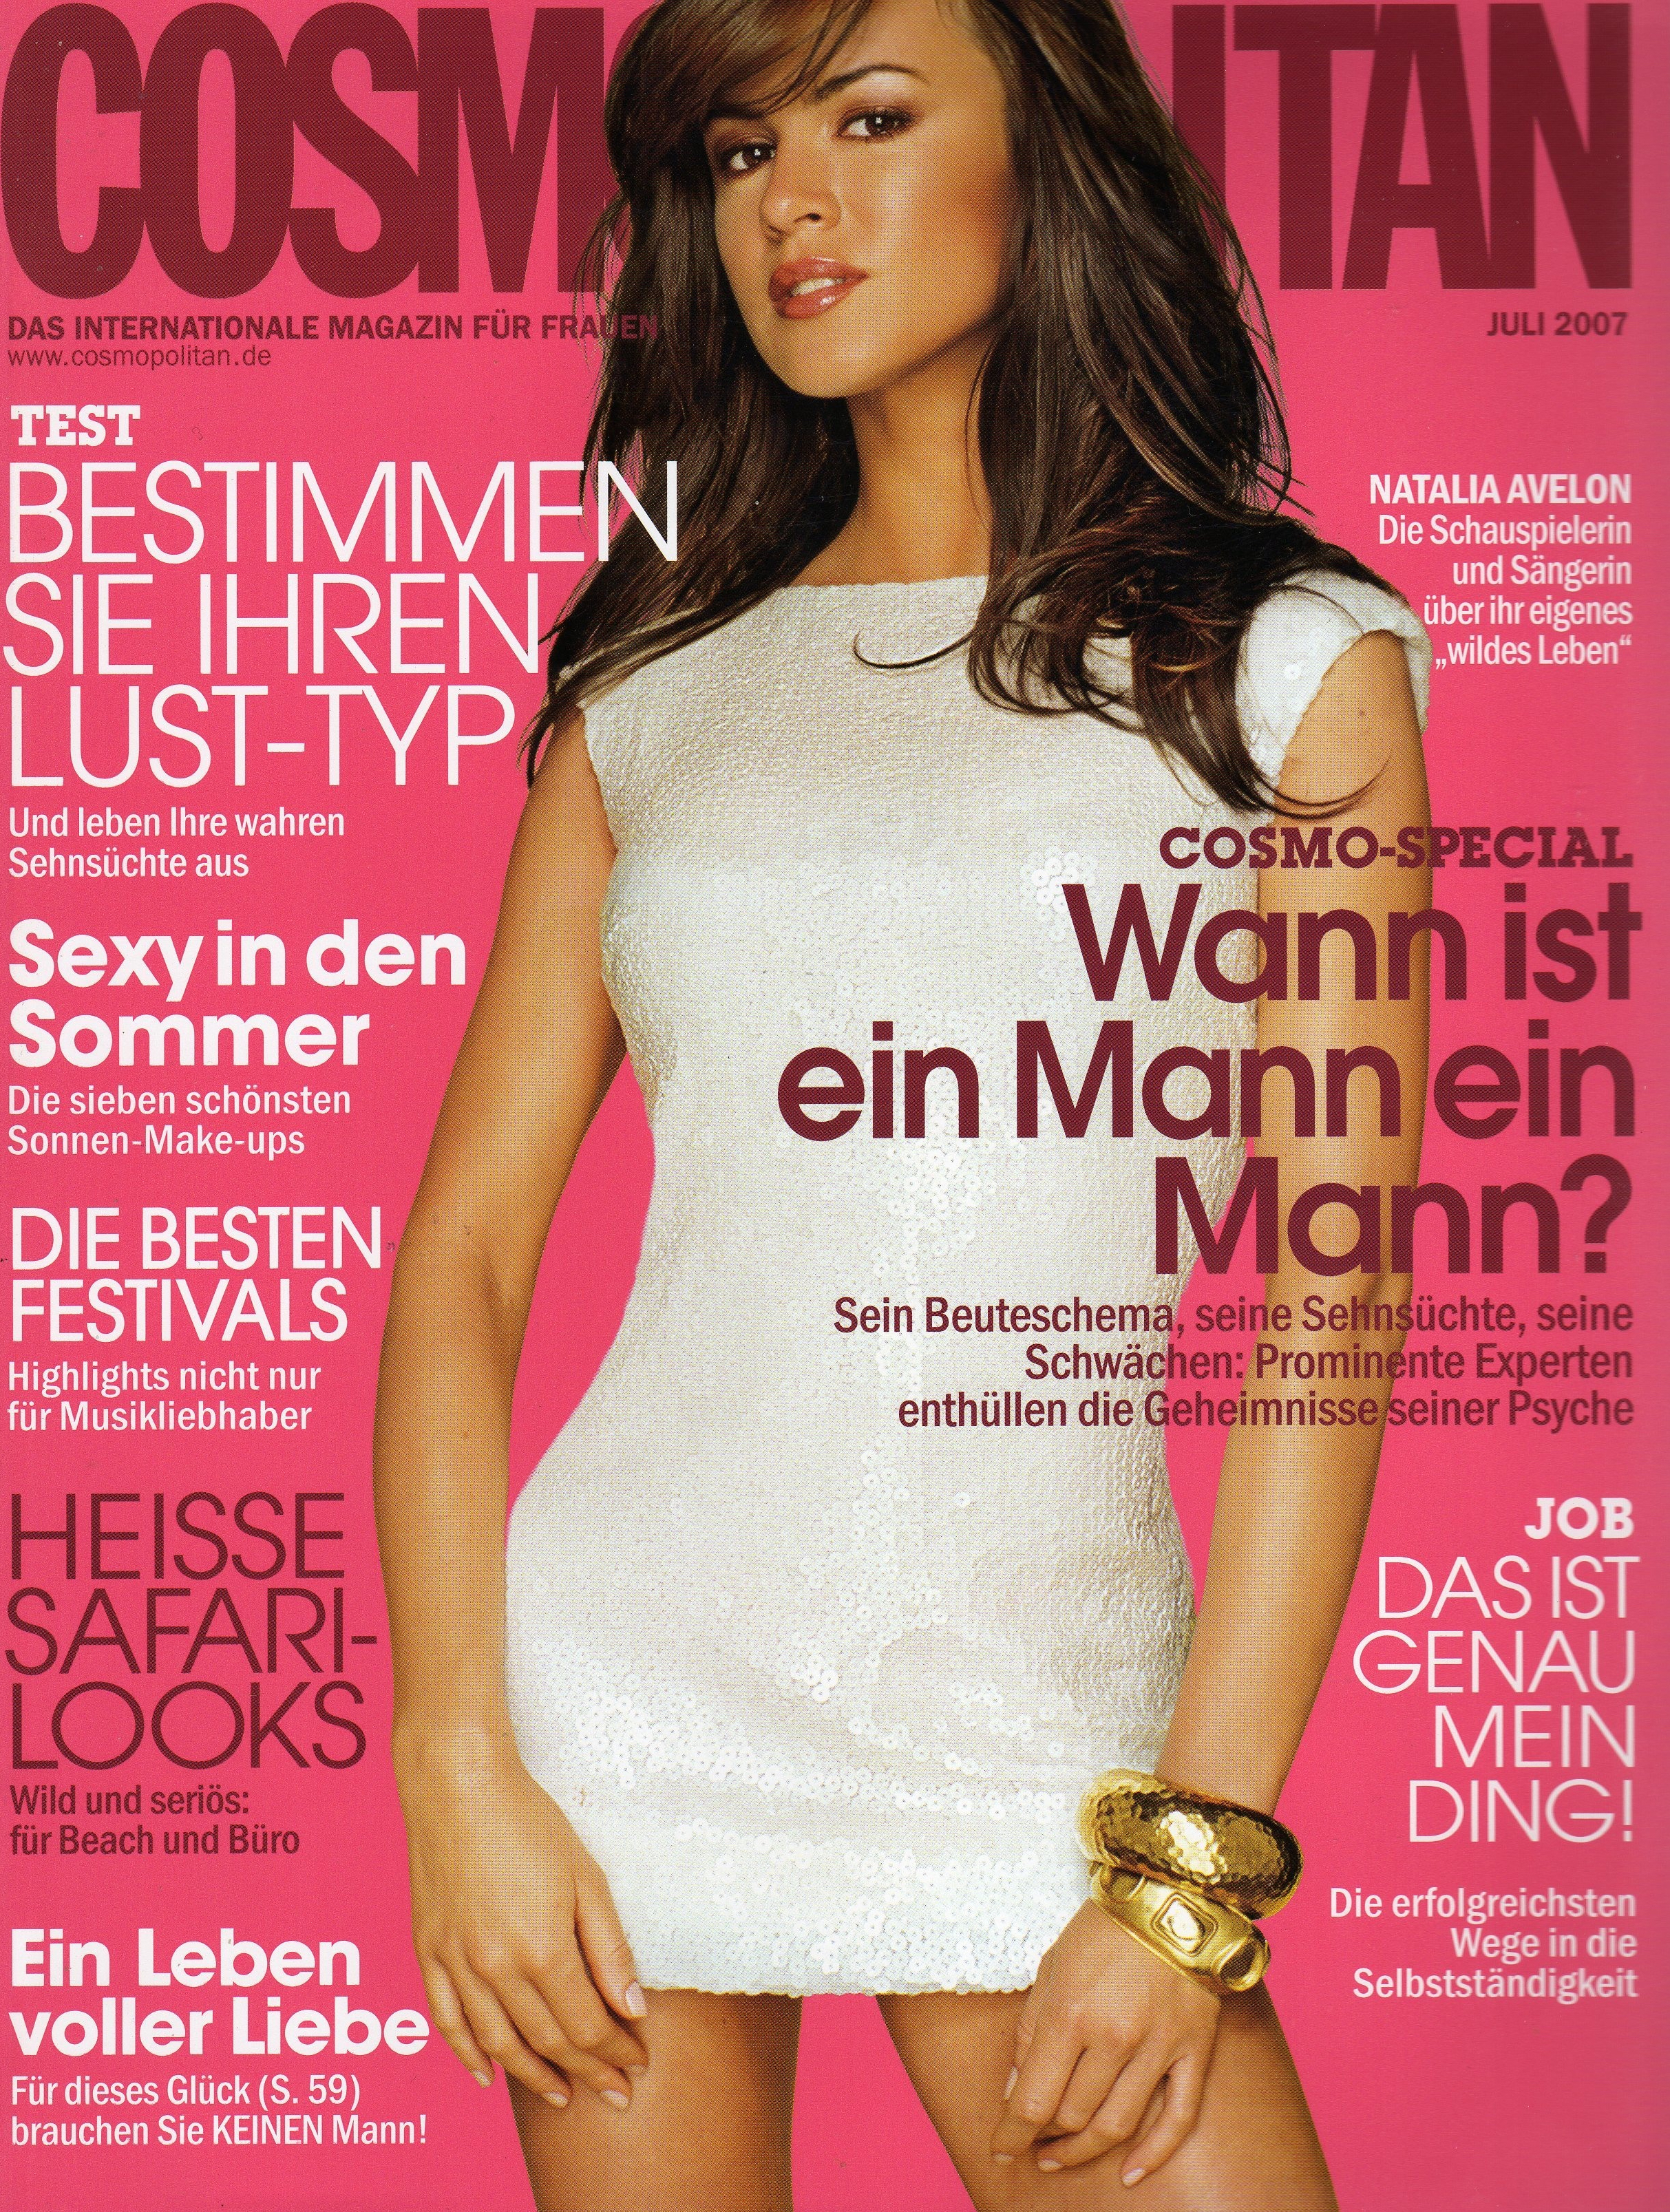 © COSMOPOLITAN Germany